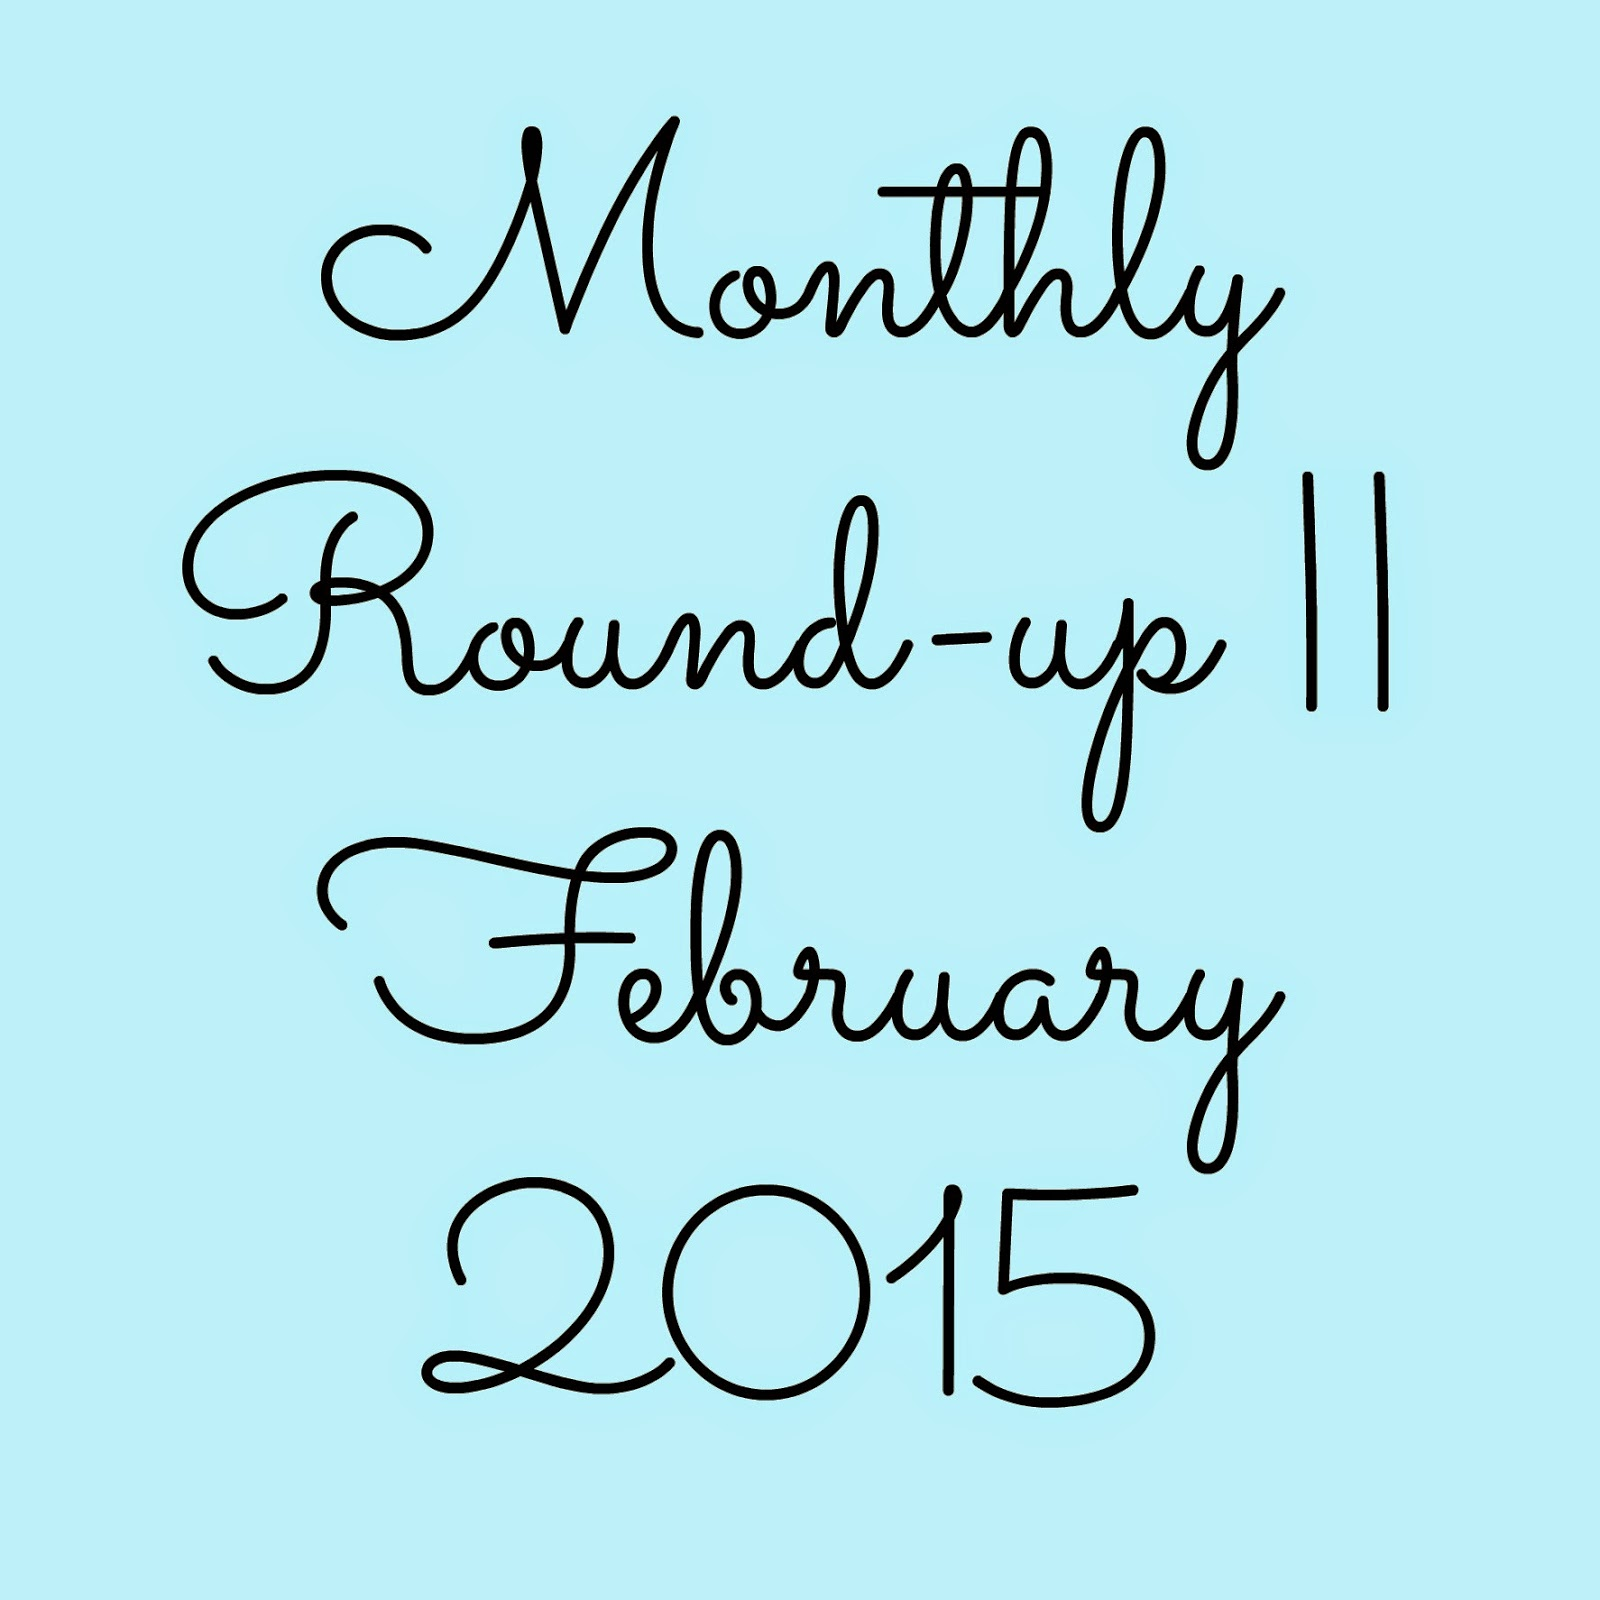 Bows and Clothes: Monthly Round-Up: February 2015. Every month I round-up all of the post of that month that had the most page views, comments, shares, etc. Check it out to see which posts had what!